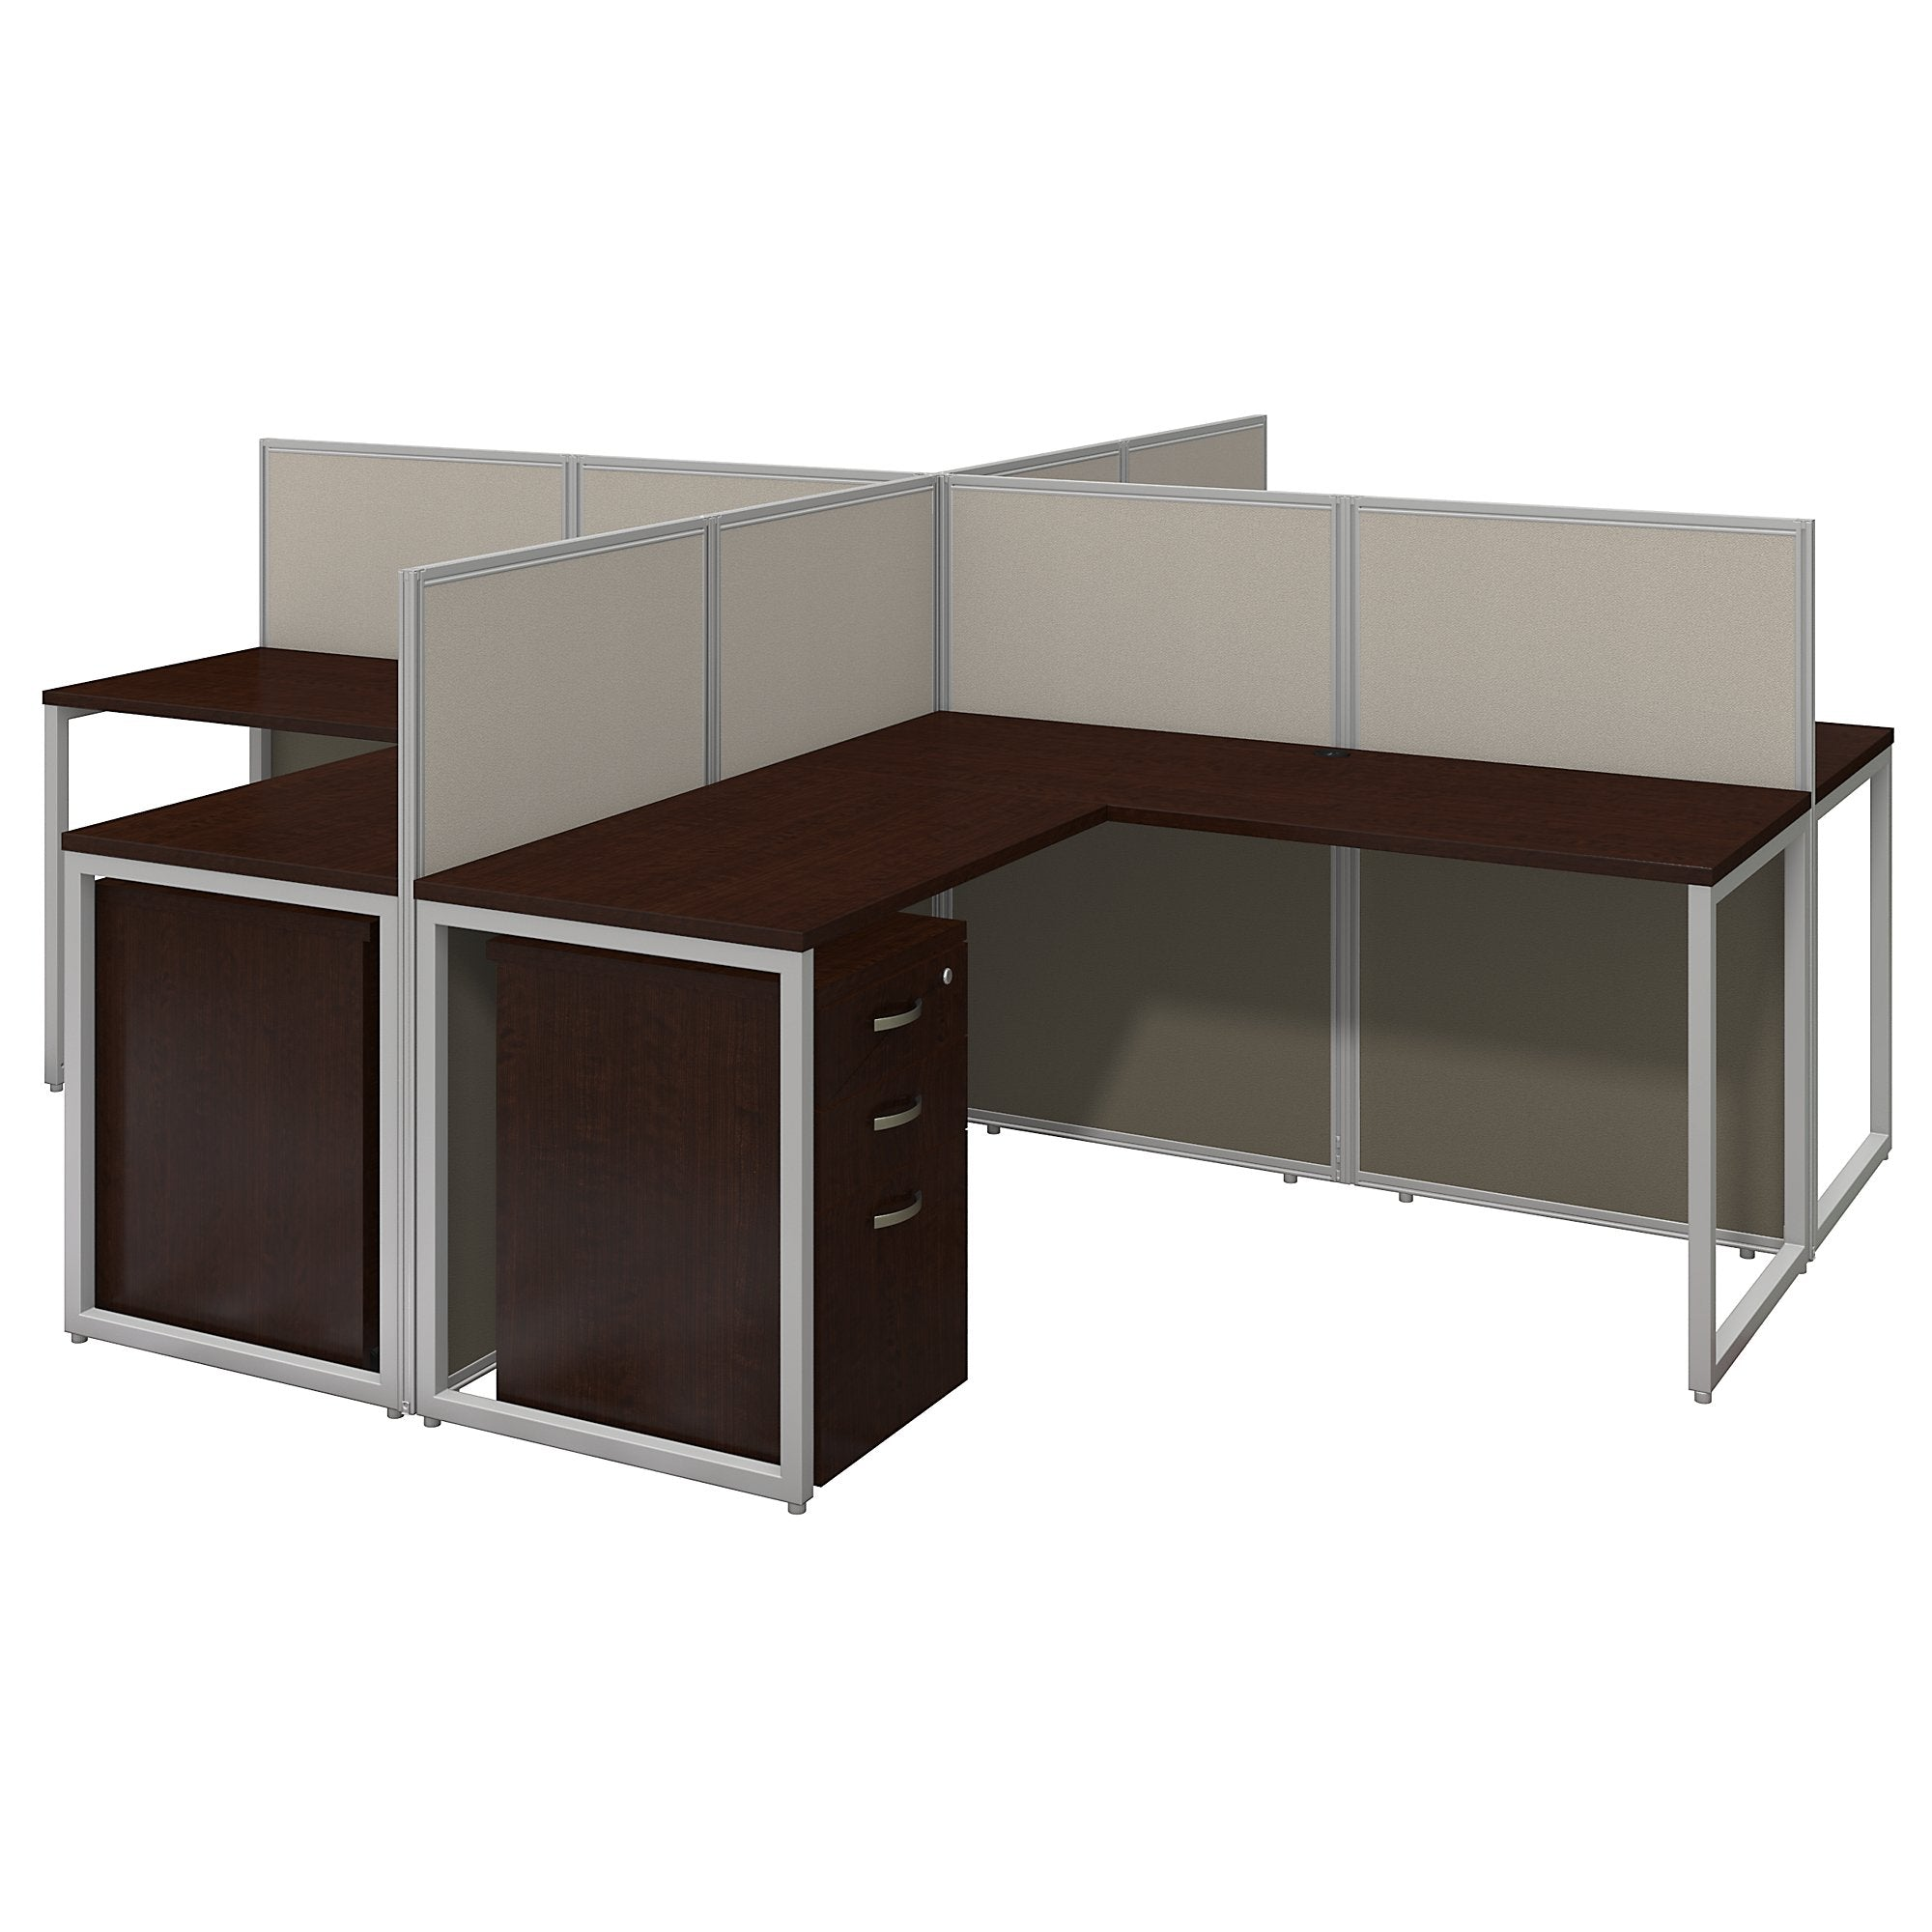 Bush Business Furniture Easy Office 60W 4 Person L Shaped Desk Open Office with Mobile File Cabinets | Mocha Cherry